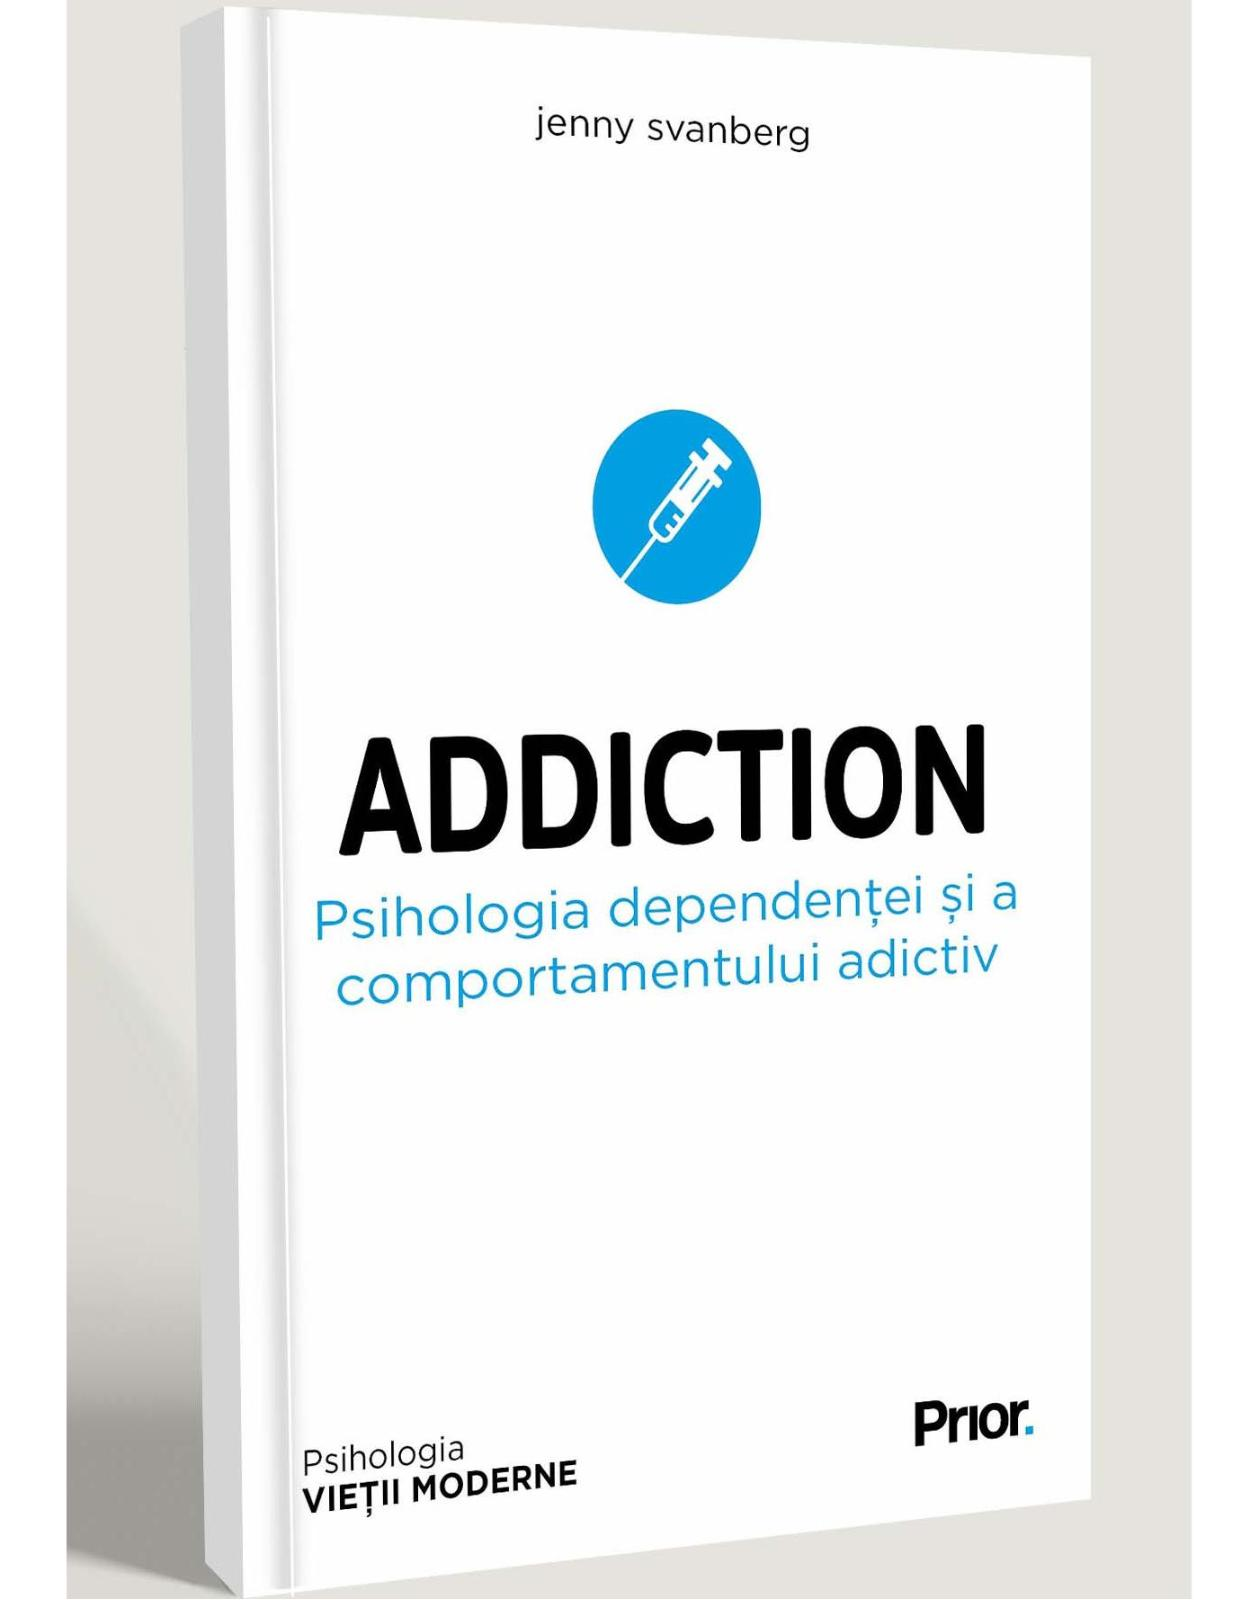 ADDICTION. Psihologia dependenței și a comportamentului adictiv